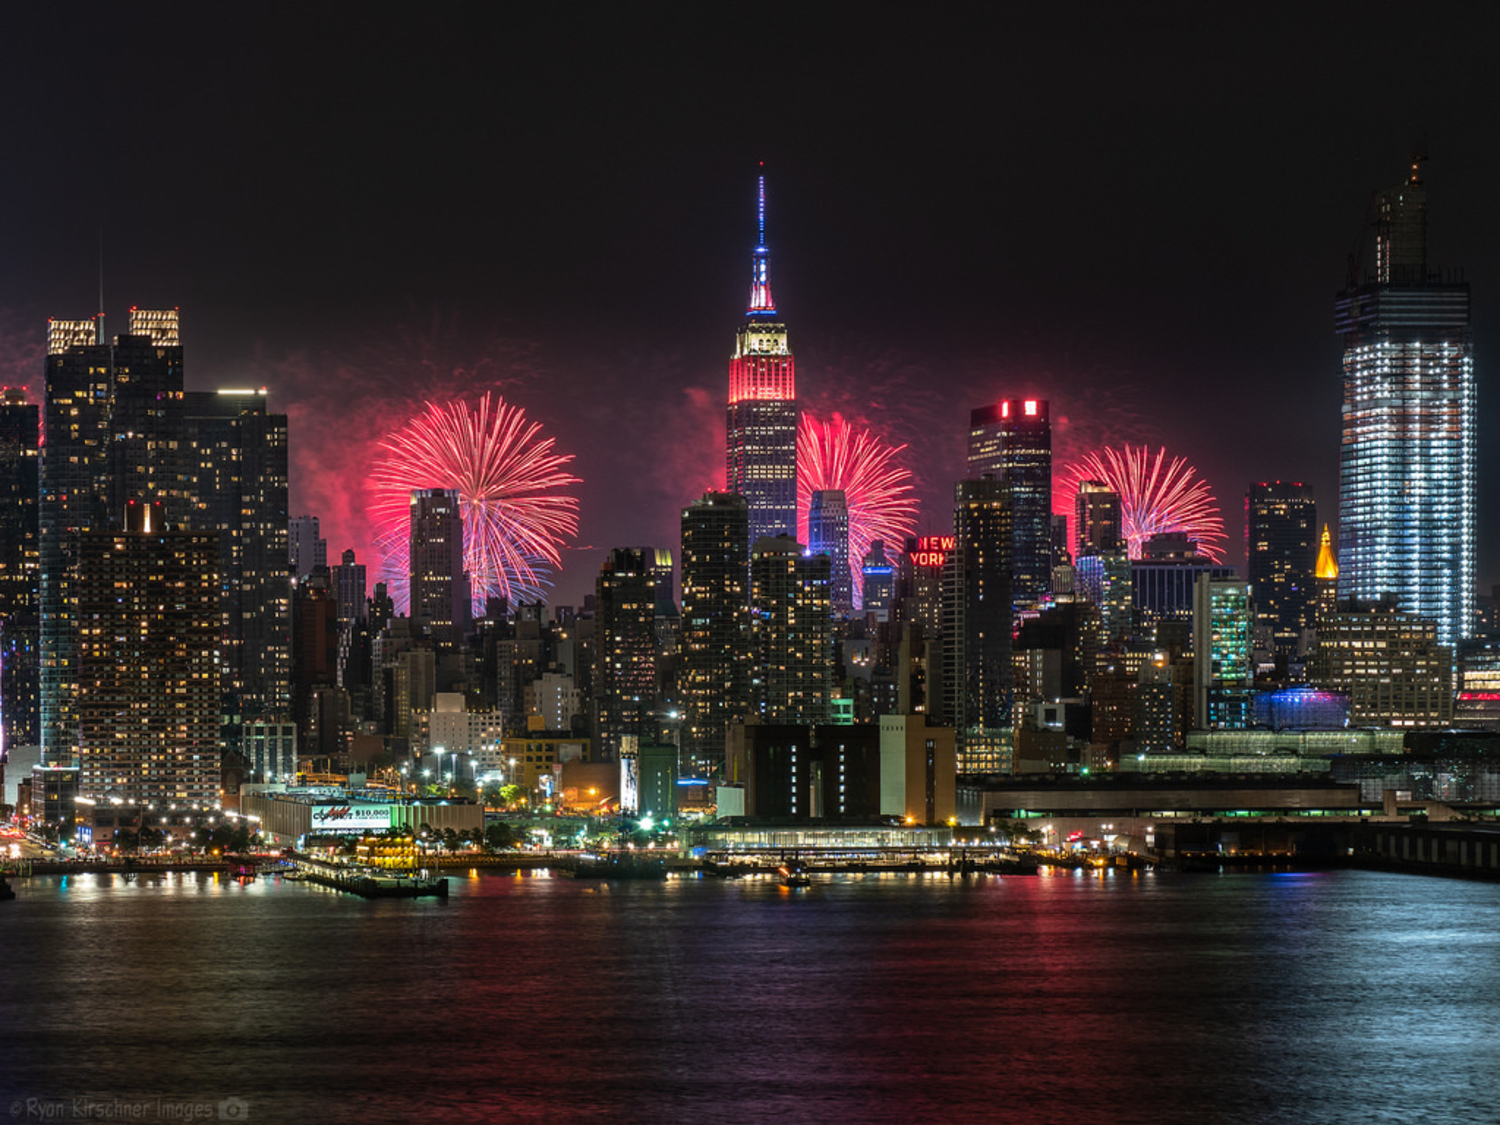 Macy's Fourth of July Fireworks over NYC, 2018